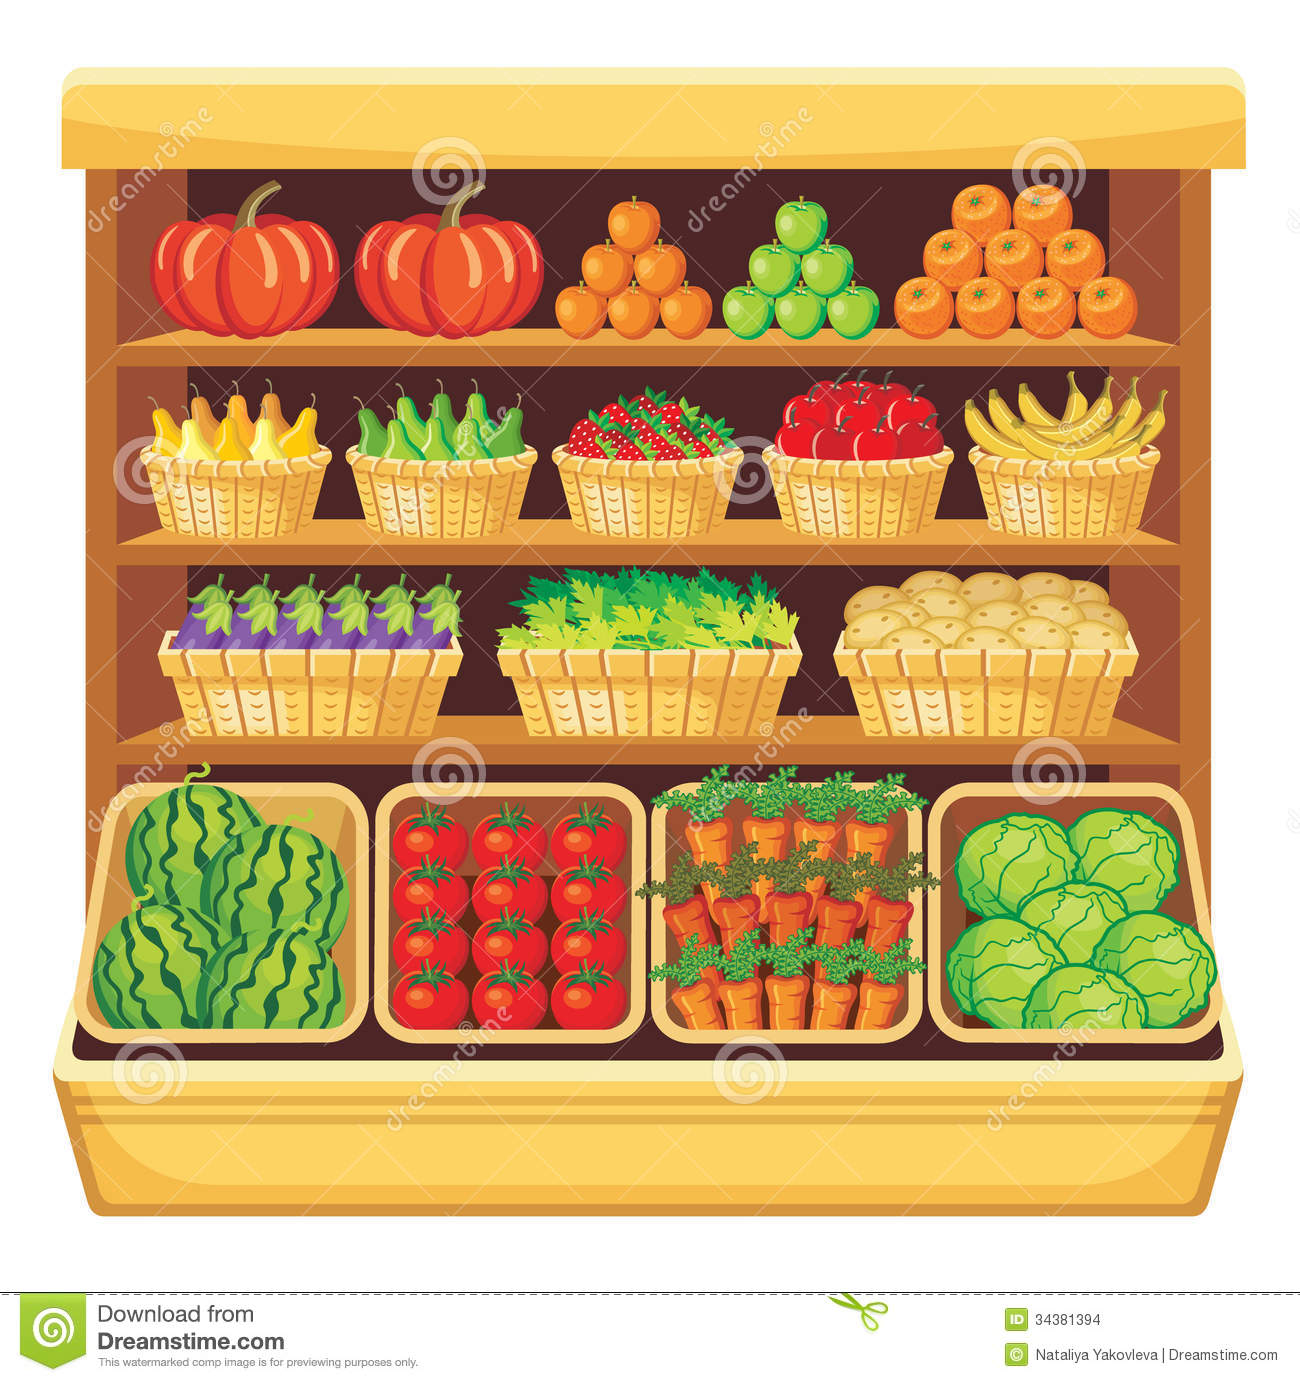 More similar stock images of ` Supermarket. Vegetables and fruits. `